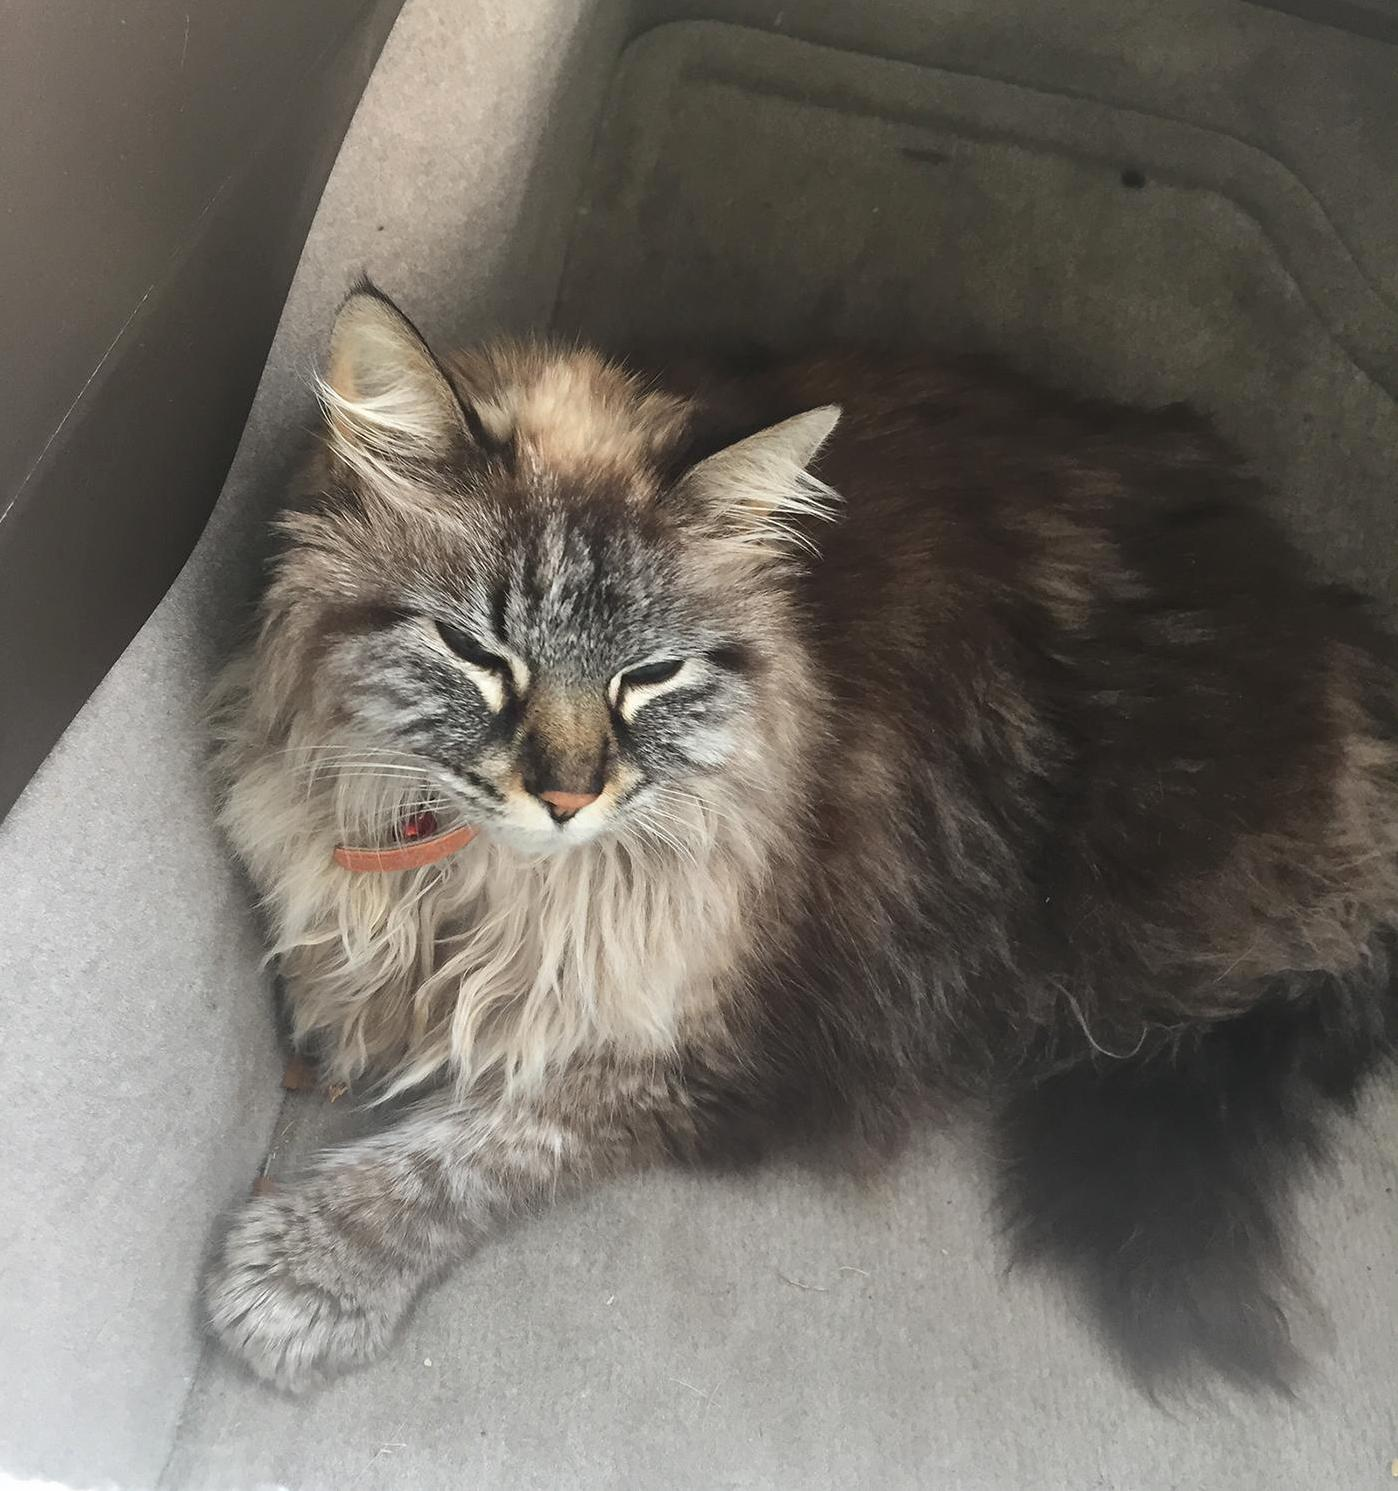 Found her lost and working on finding the owner. what breed of cat is she